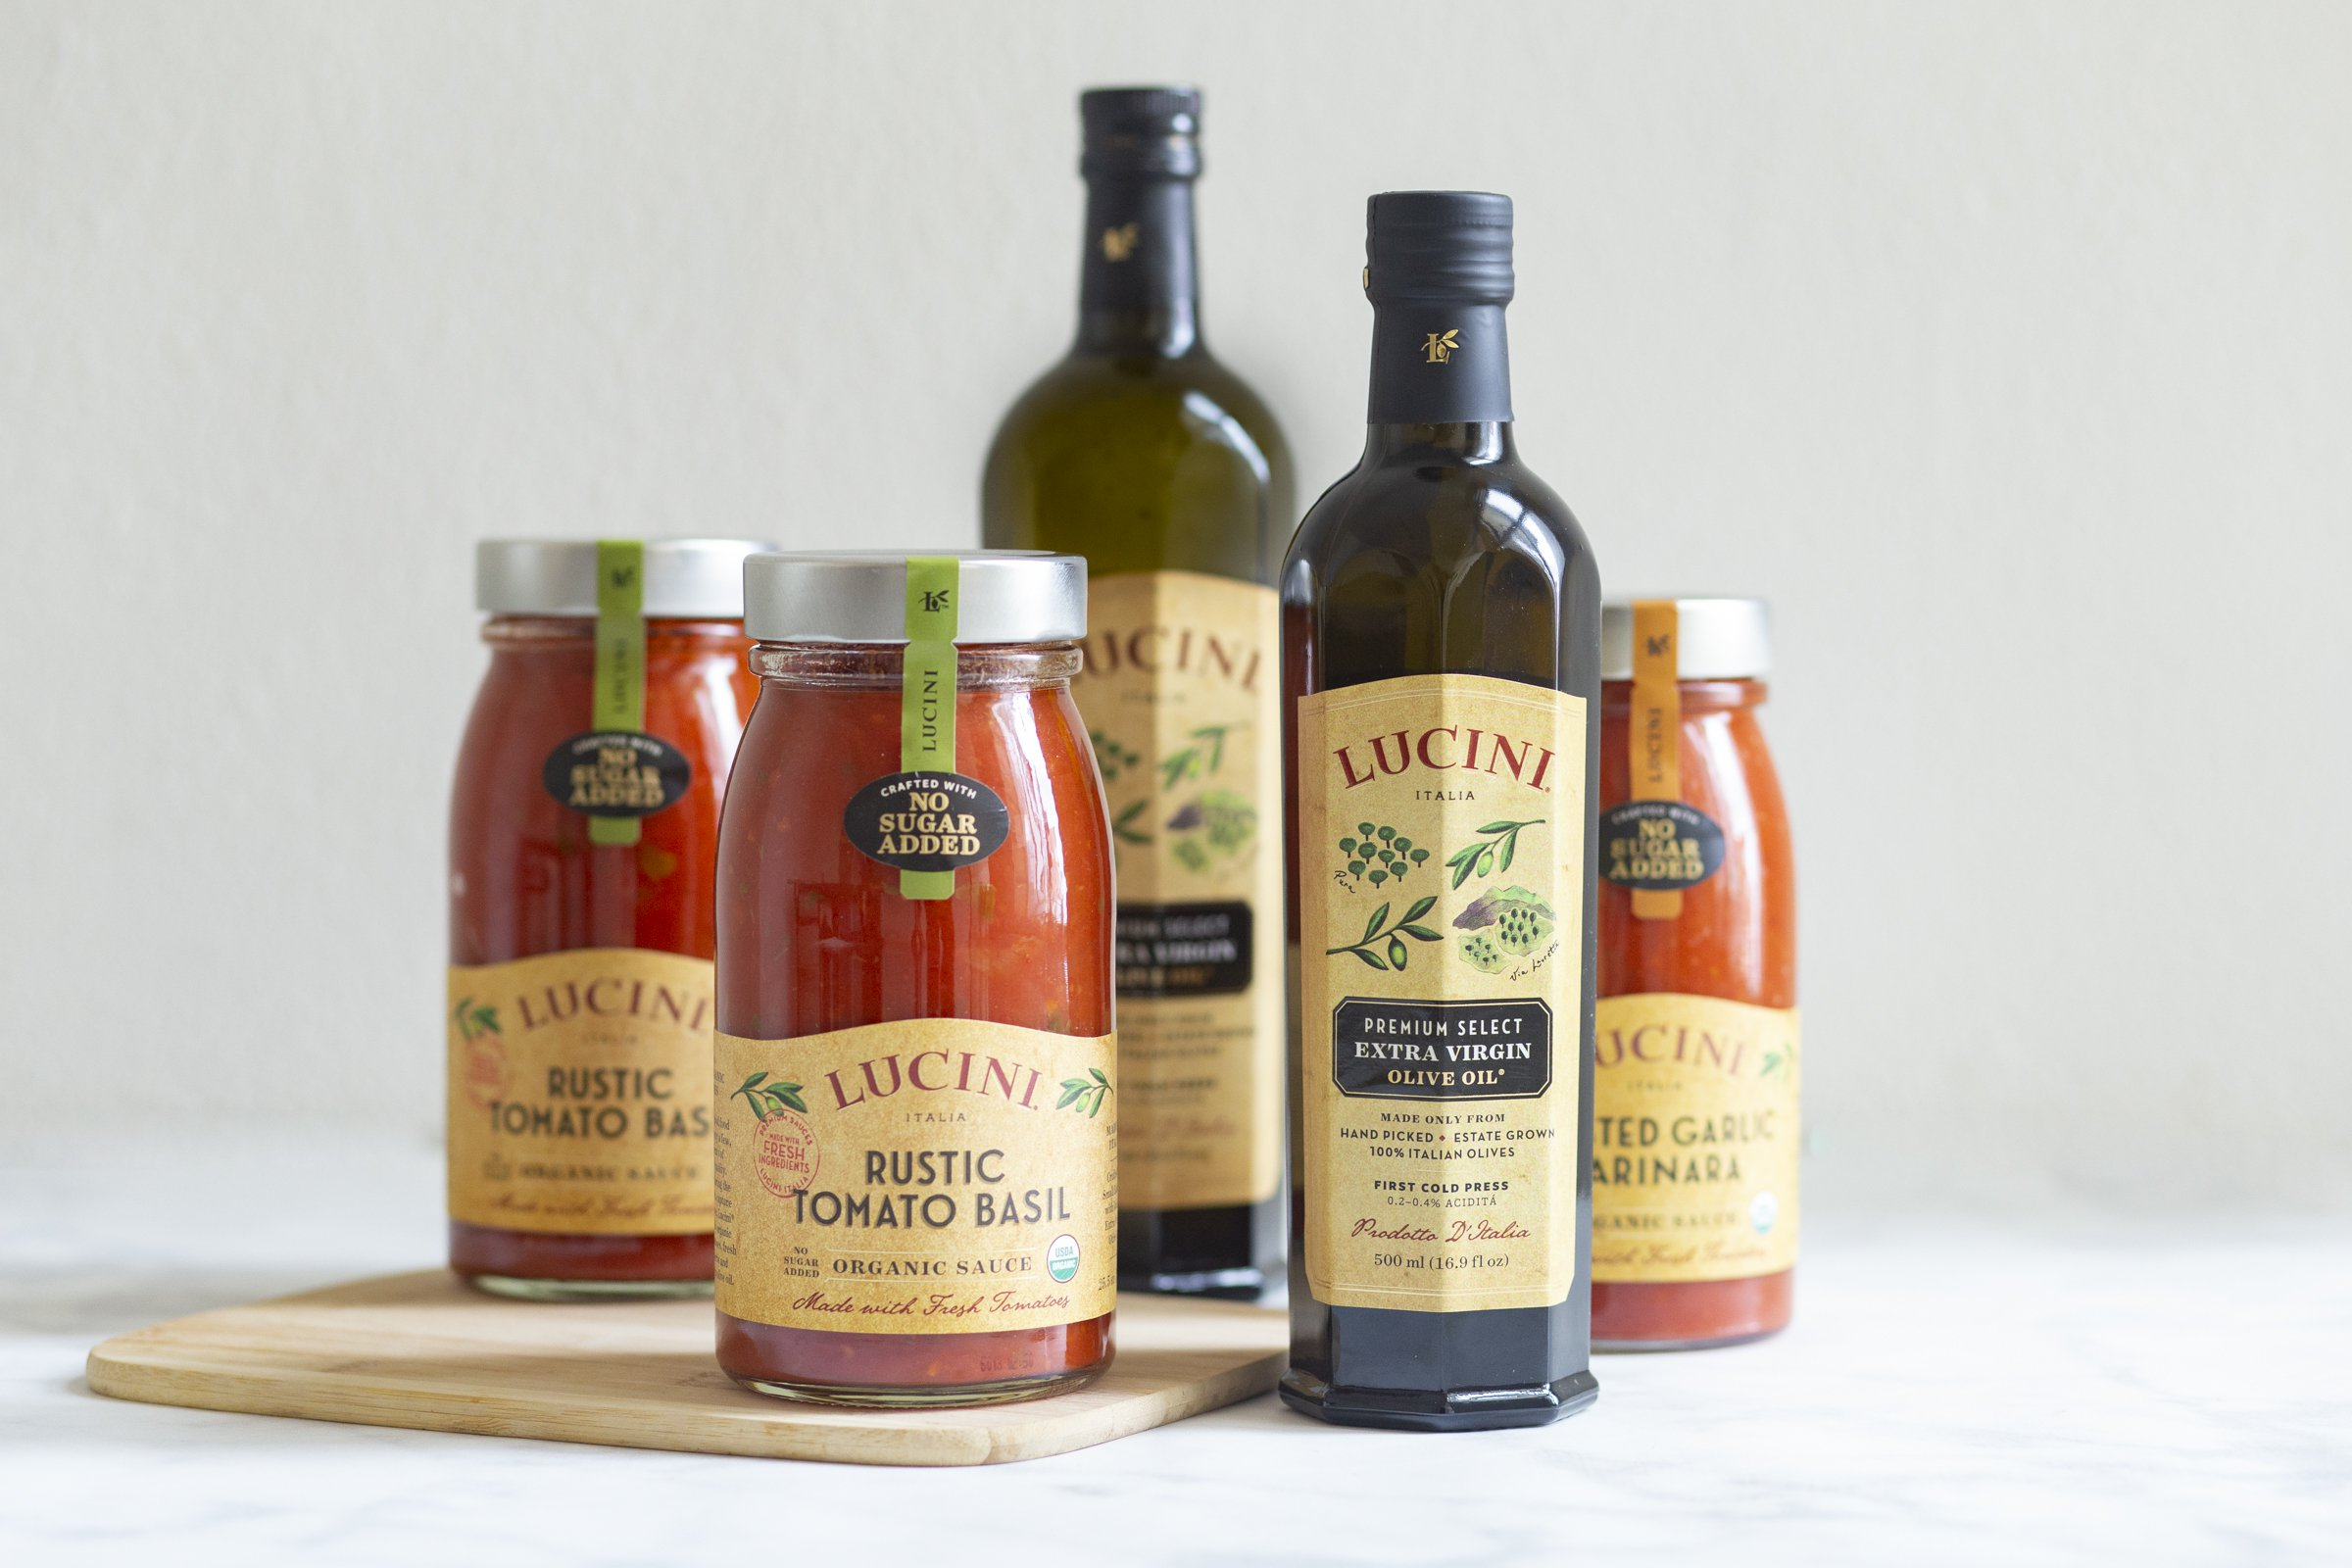 Cucina Antica Tomato Basil Whole Foods Whole30 Approved Companies Archive The Whole30 Program